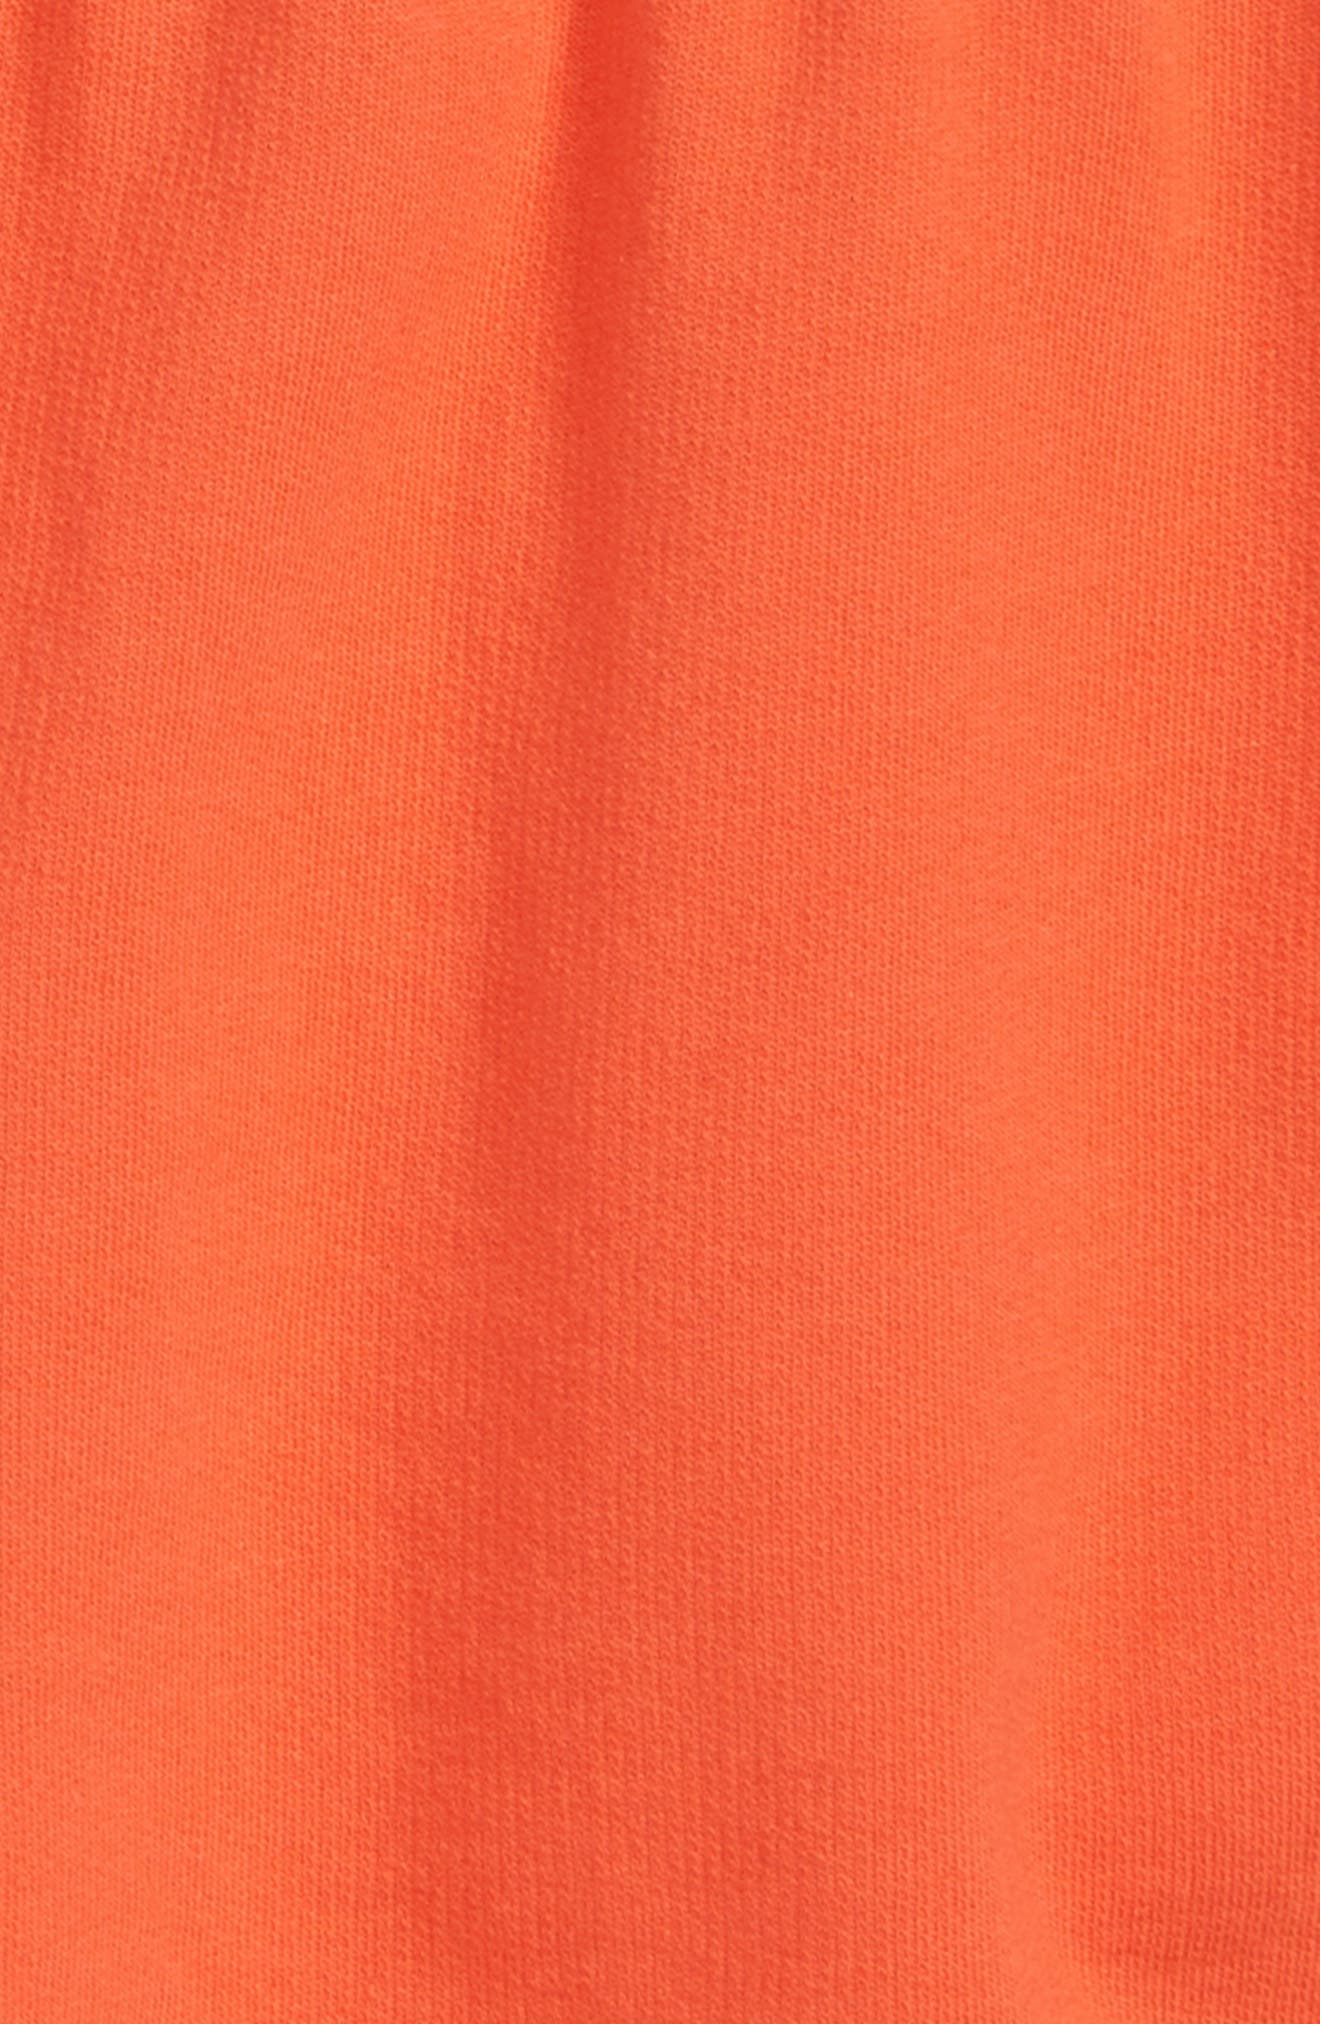 Cotton Dolphin Shorts,                             Alternate thumbnail 2, color,                             Coral Hot